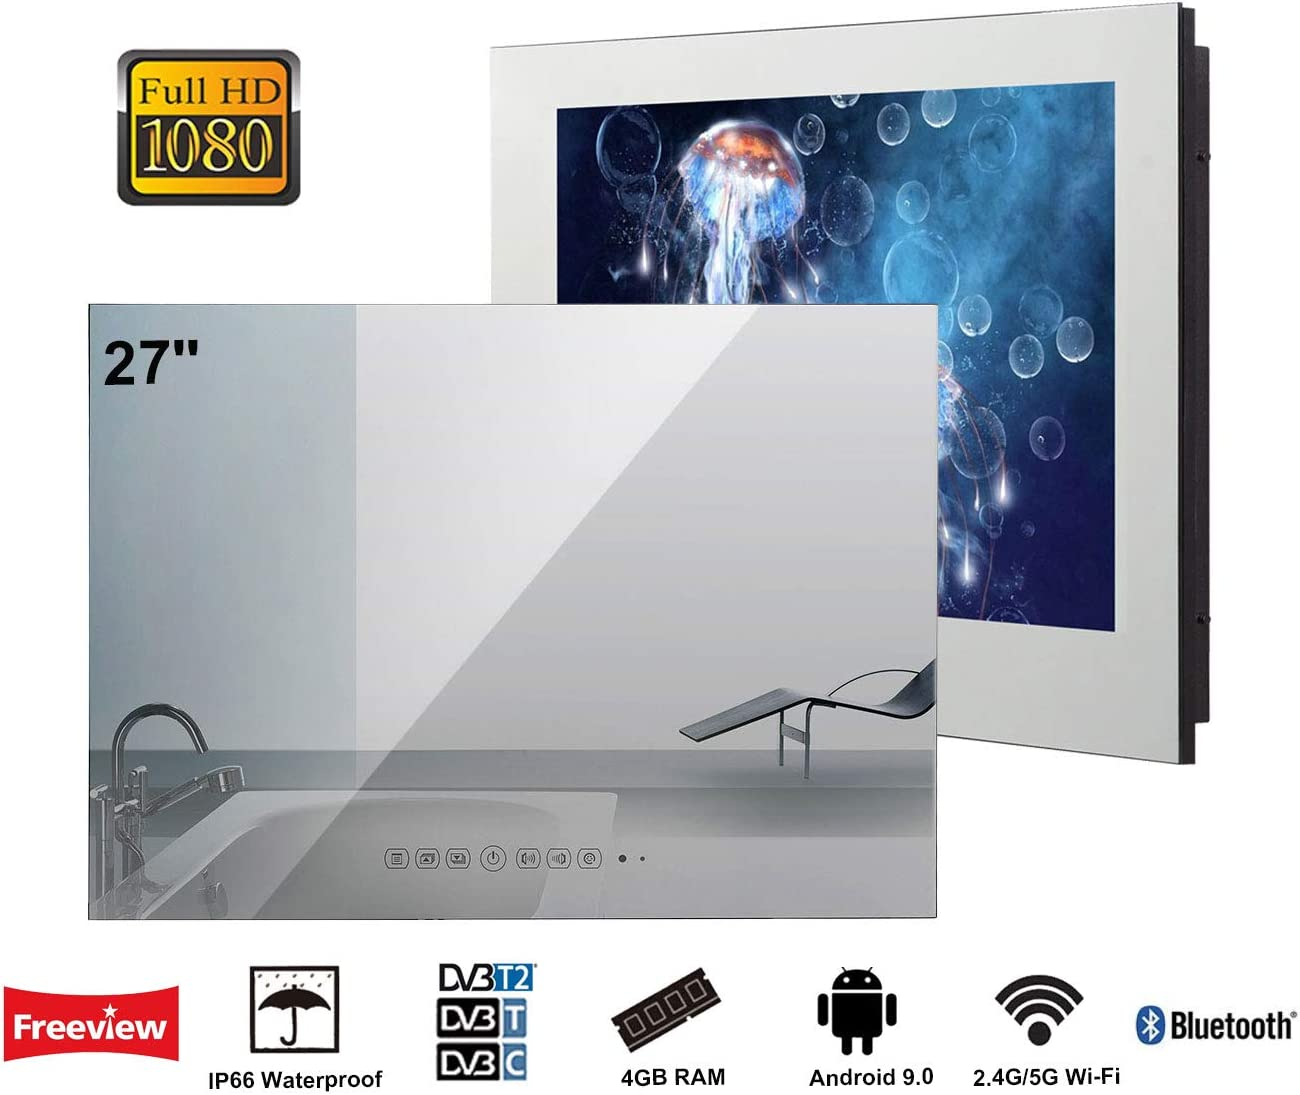 Soulaca innovativtv LED Andriod Smart TV Baño Espejo Frontal 27 Pulgadas Resistente al Agua IP66 con Wi-Fi Incorporado: Amazon.es: Electrónica